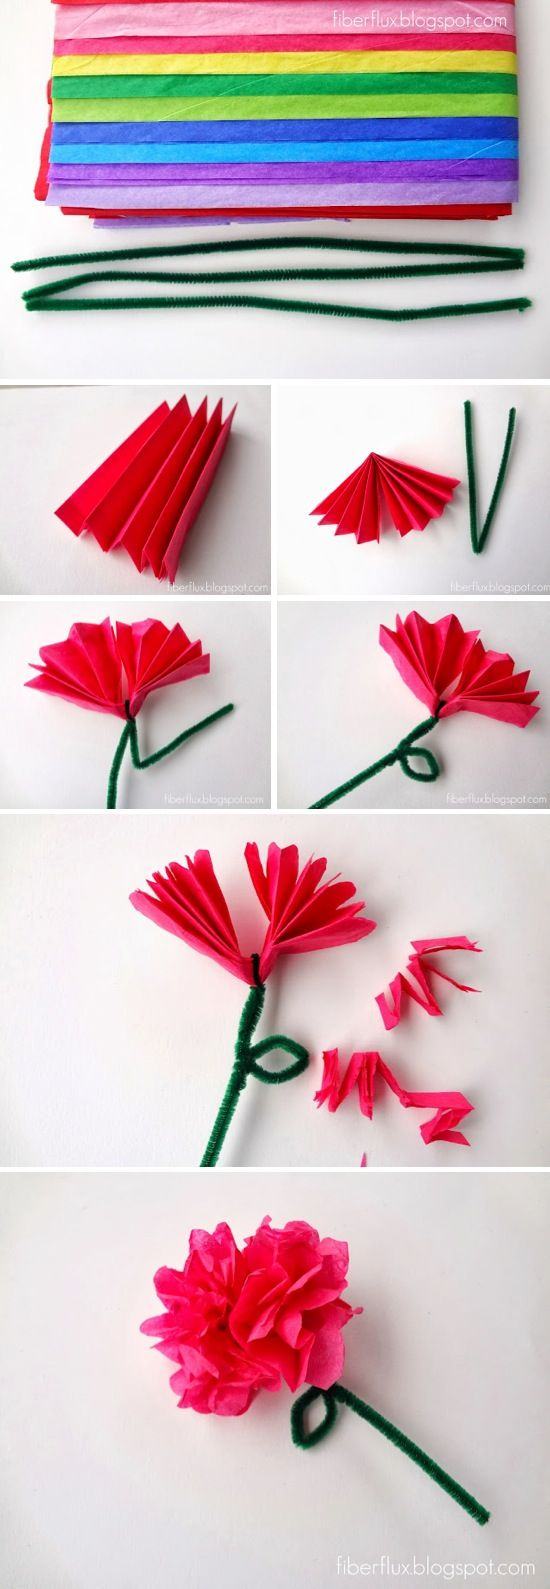 crepe paper flower making instructions